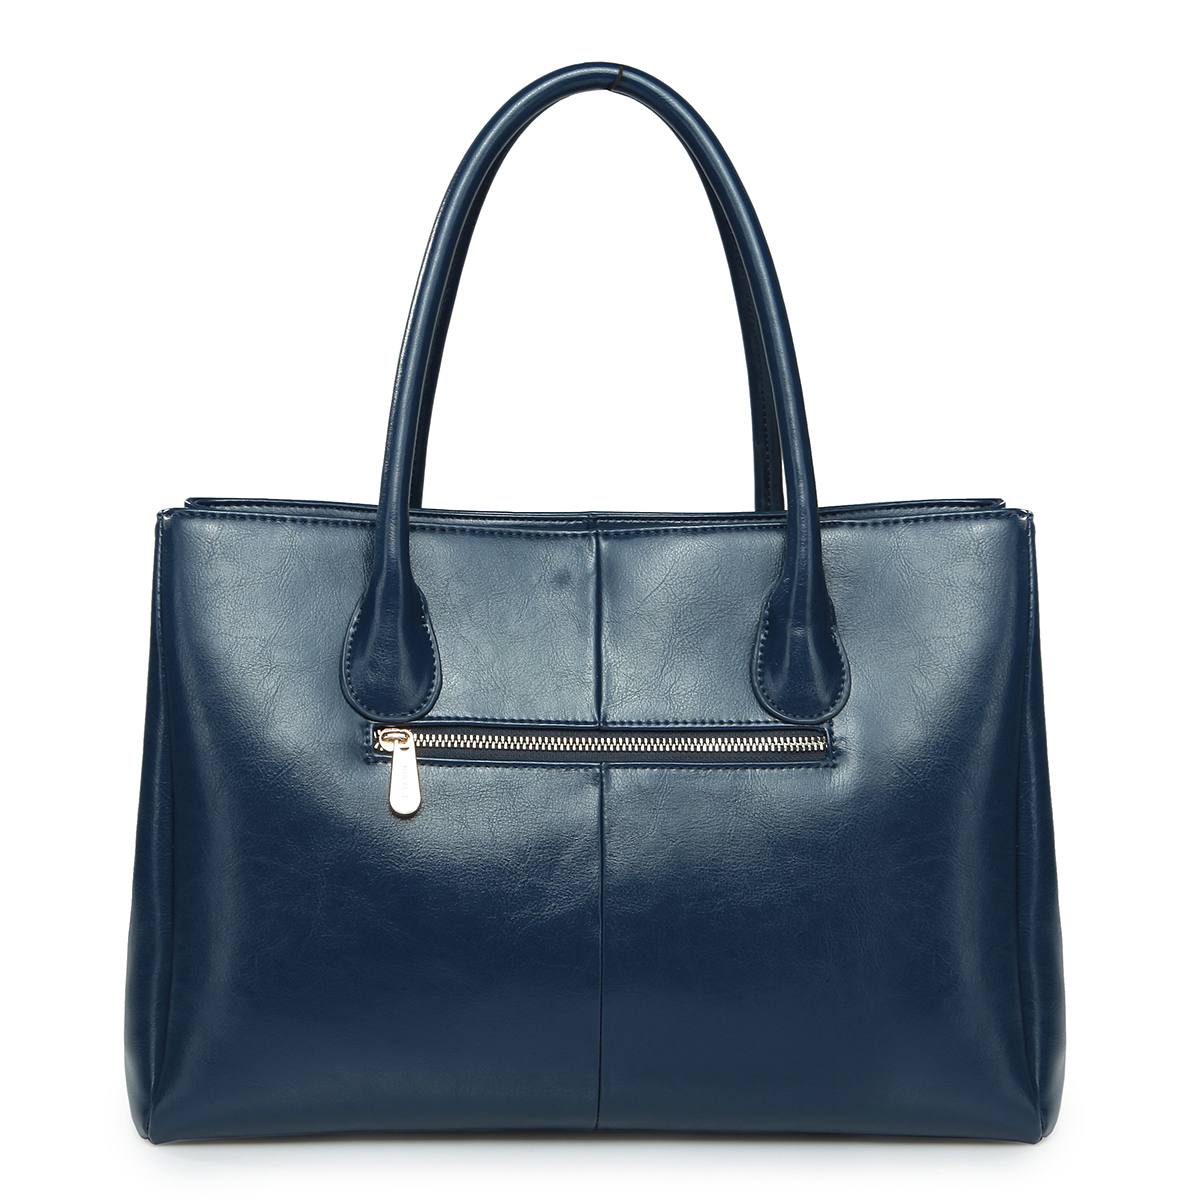 ... Bags  Women's Handbags  Elegance cowhide leather handbag Blue